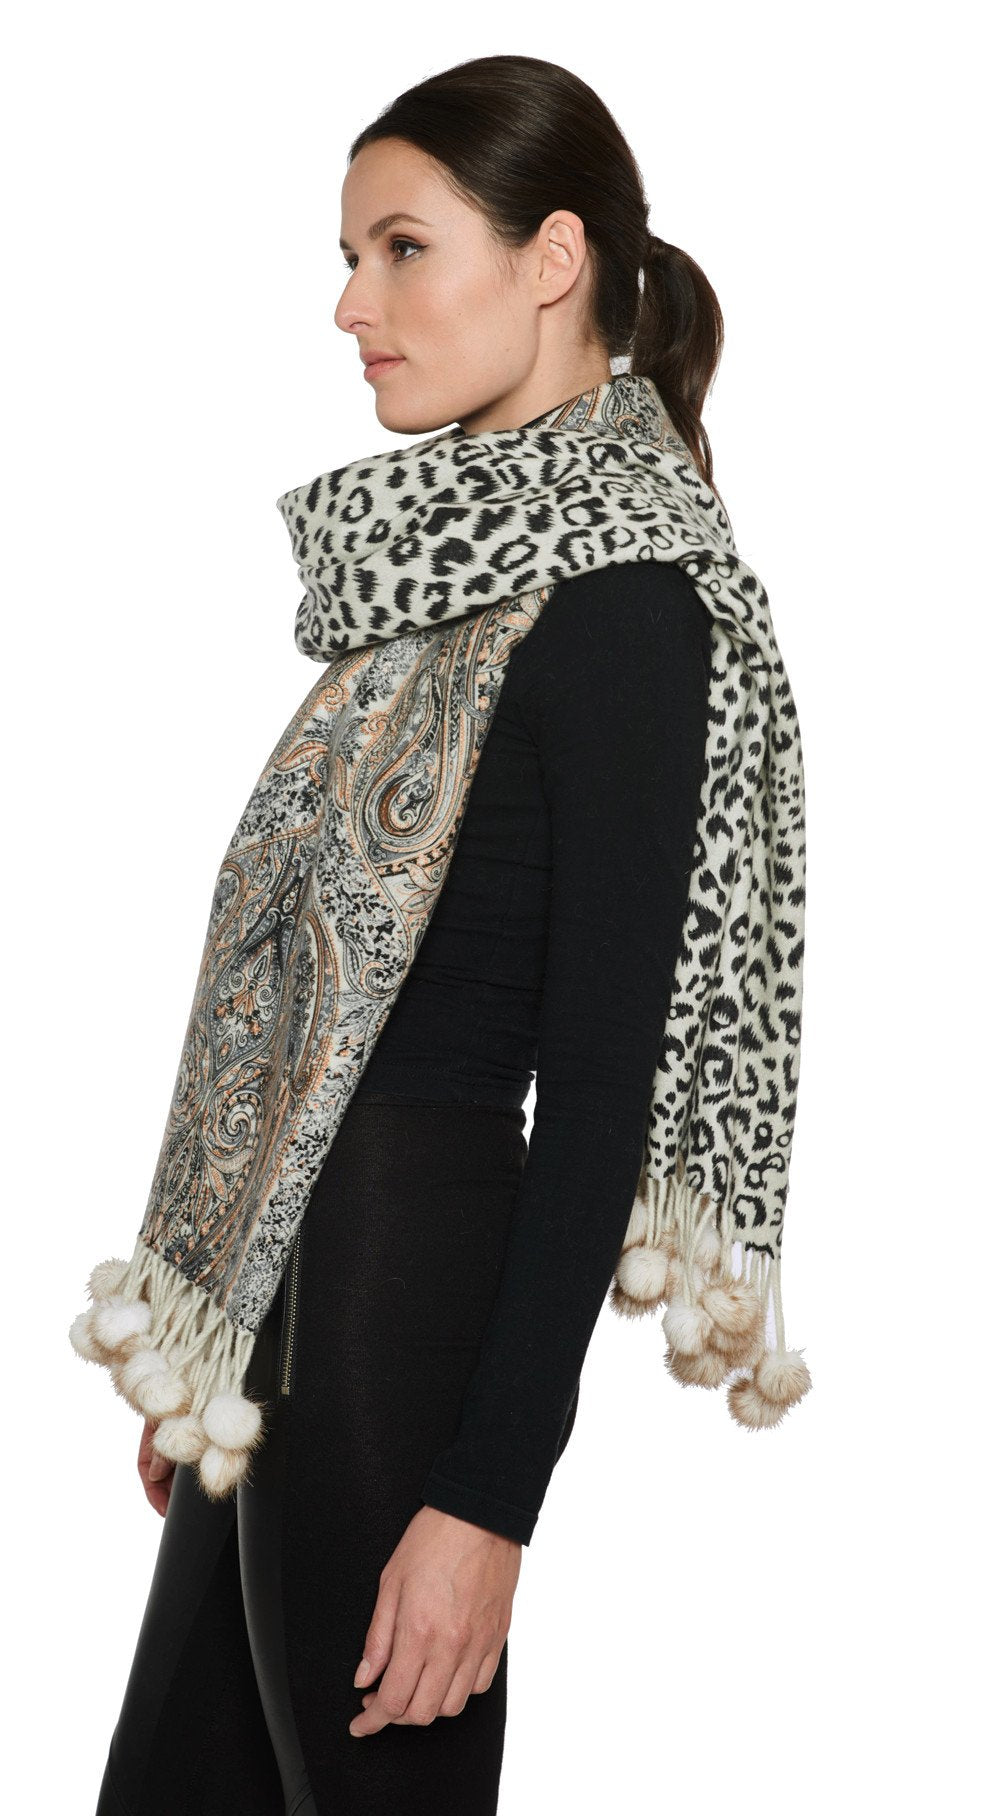 THE RYE Cashmere Reversible Paisley Wrap with Mink Fur Poms - paulamarie